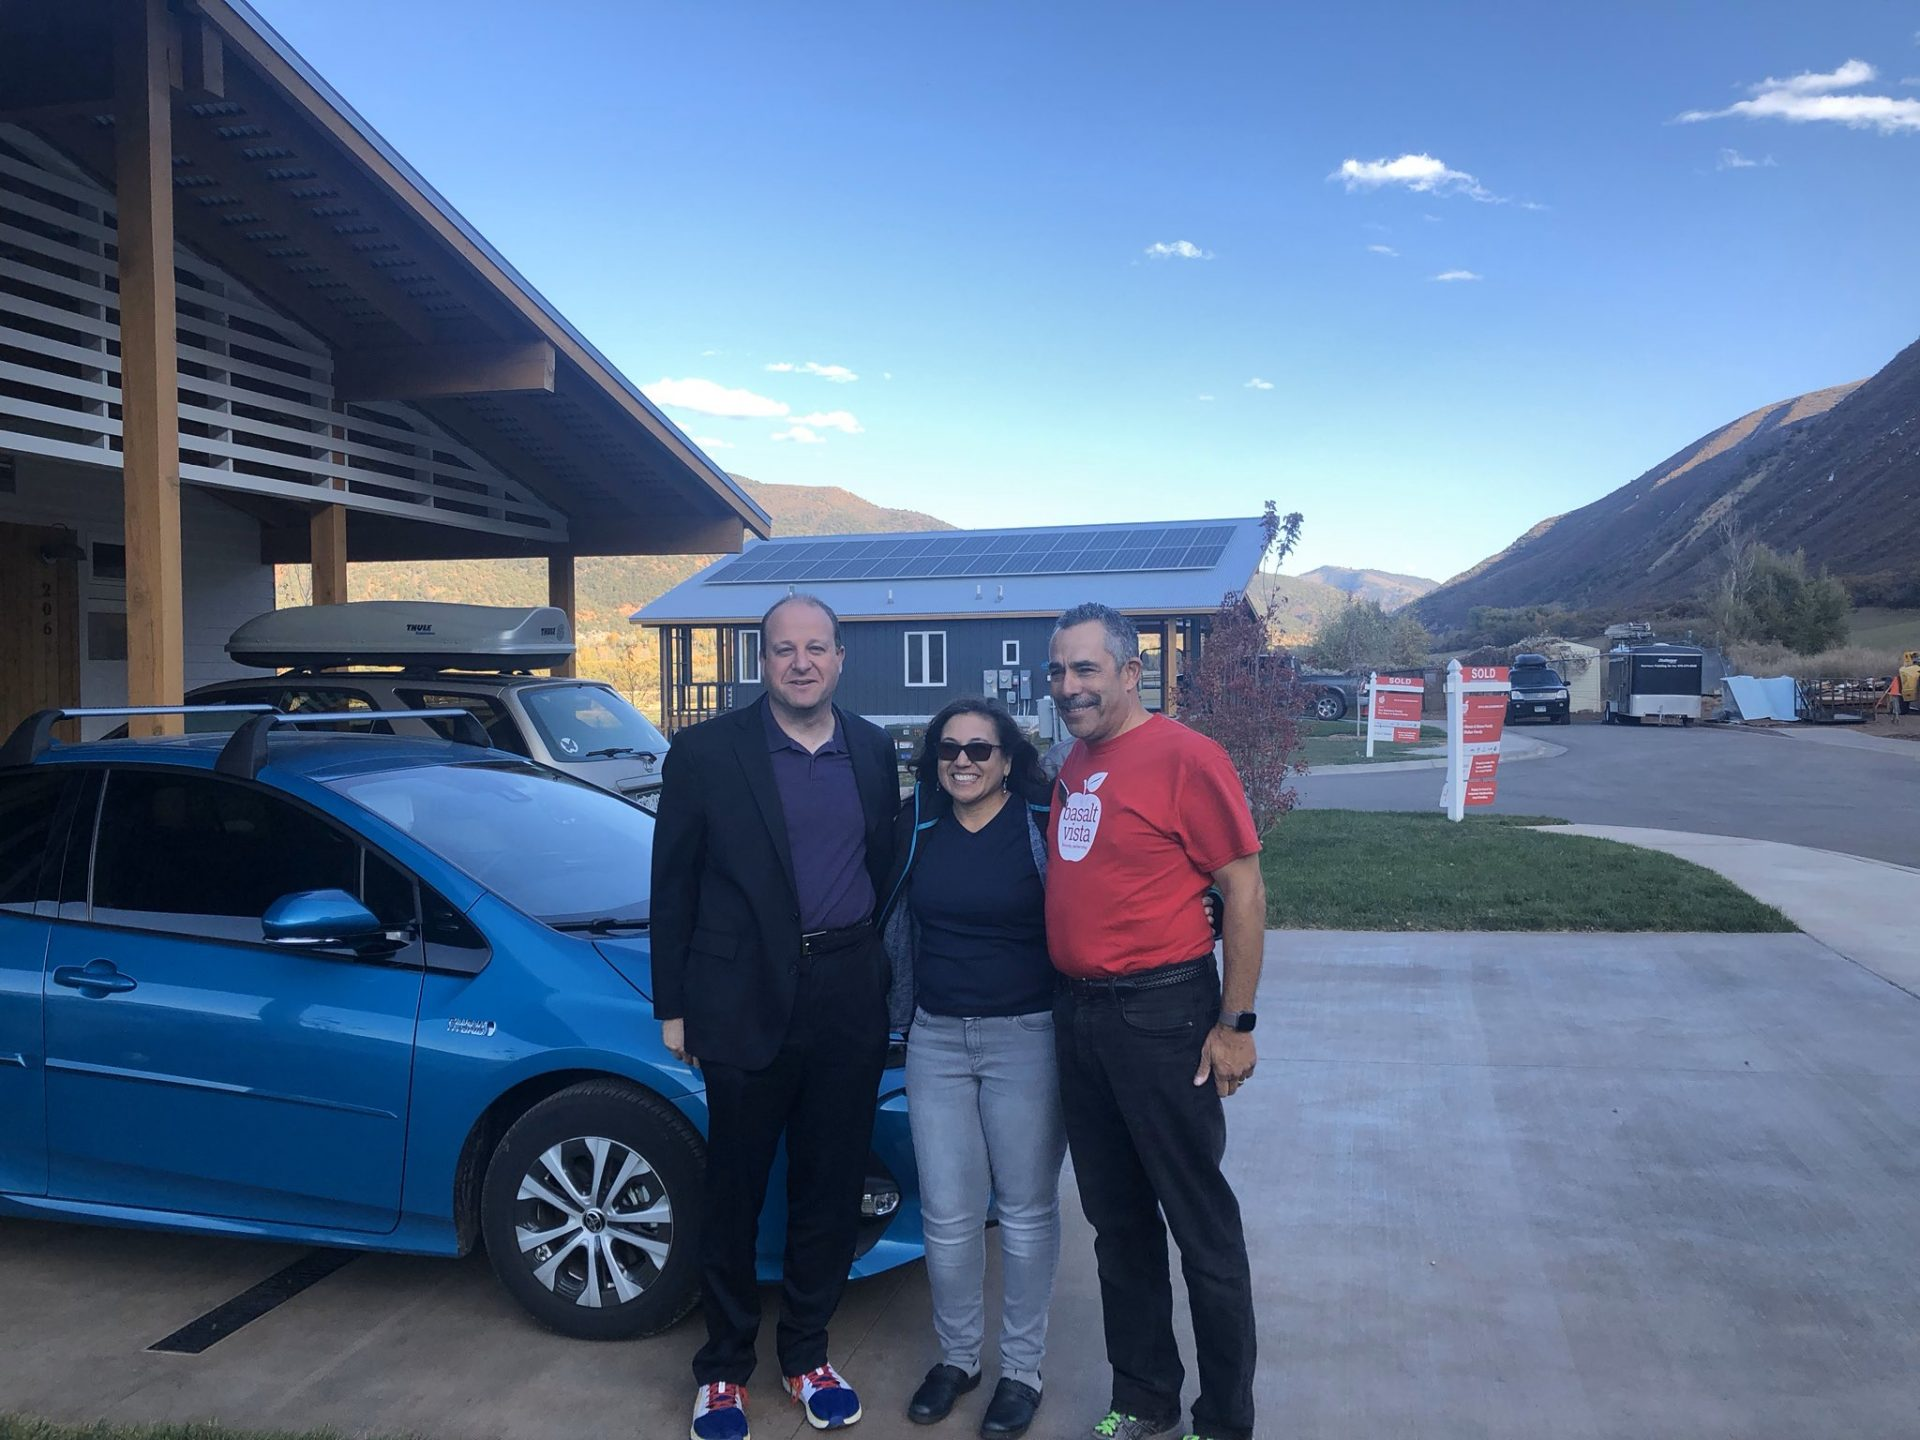 image of 3 people in front of a car